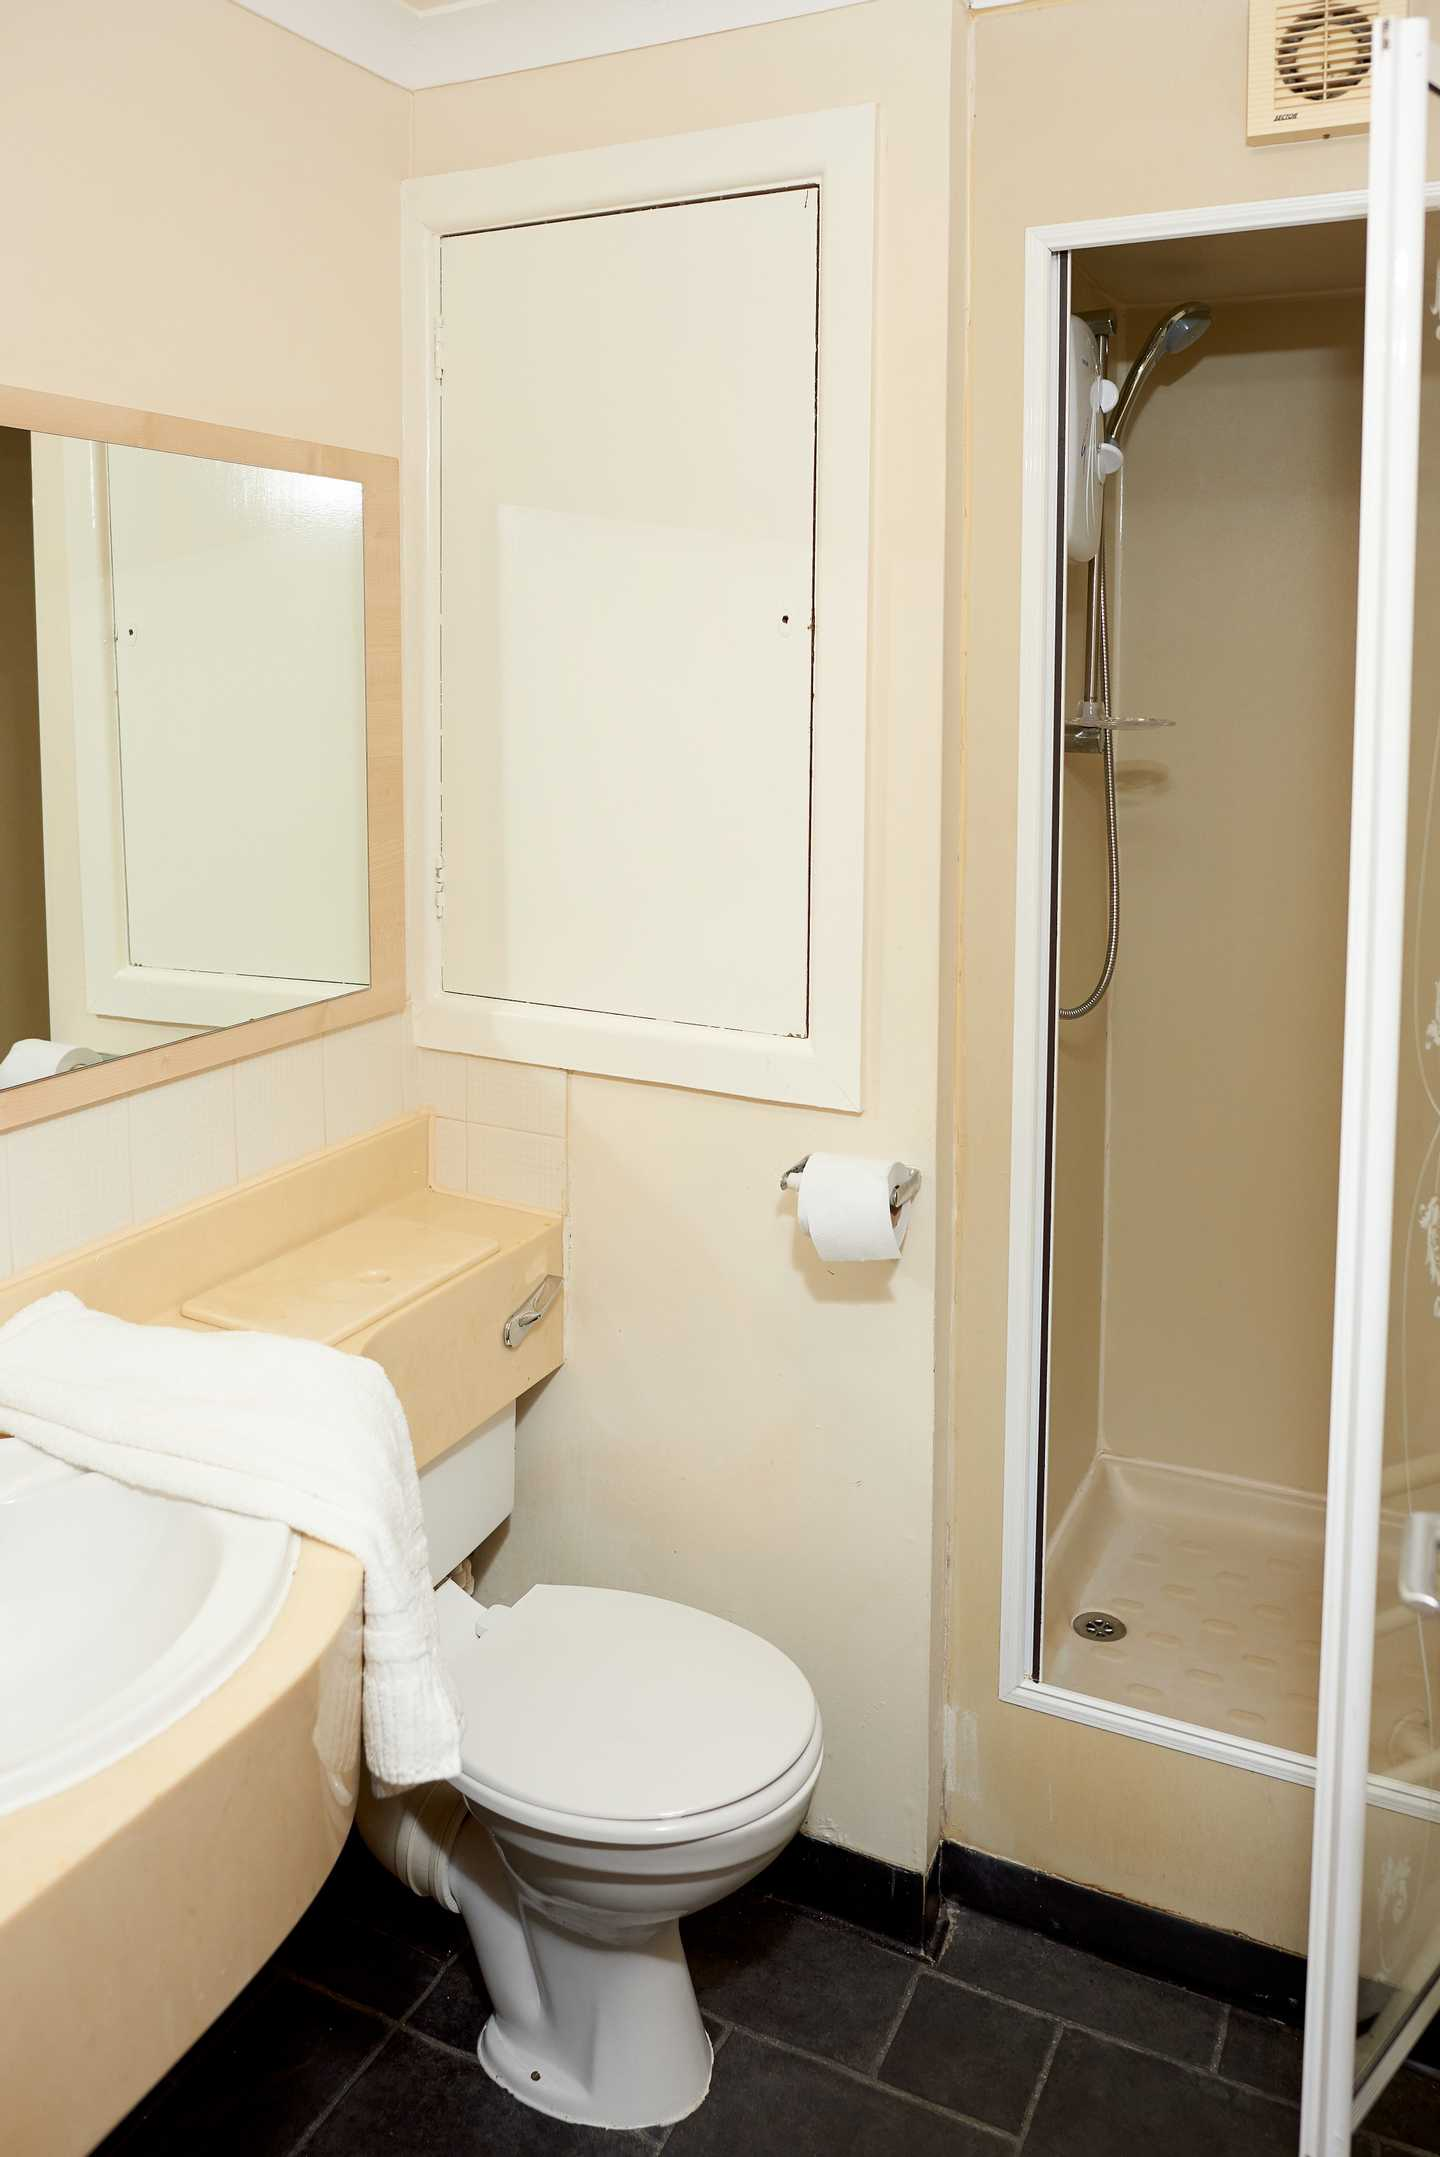 A Standard apartment bathroom with a toilet, shower, sink and mirror